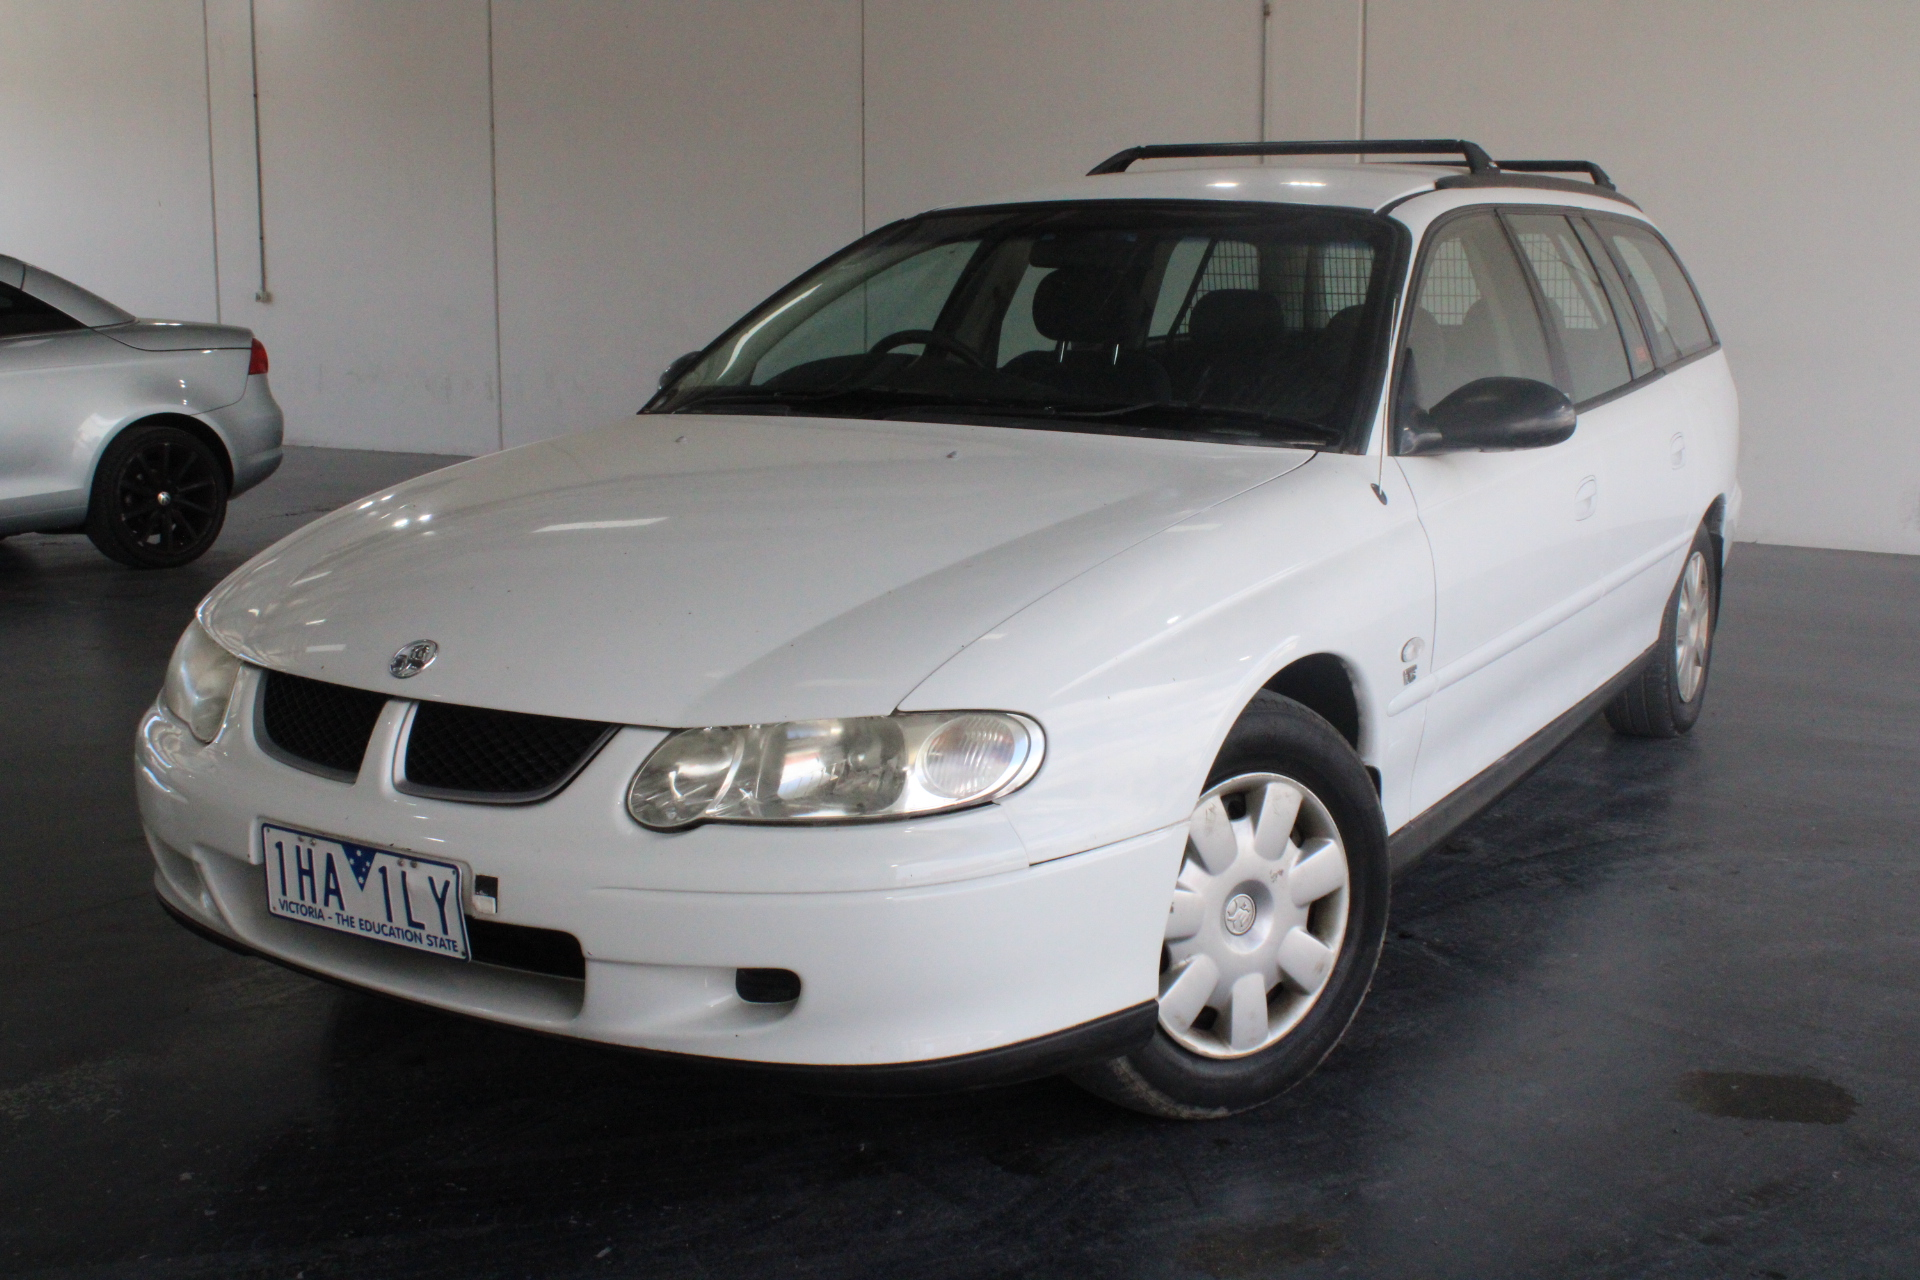 2002 Holden Commodore Acclaim VX Automatic Wagon